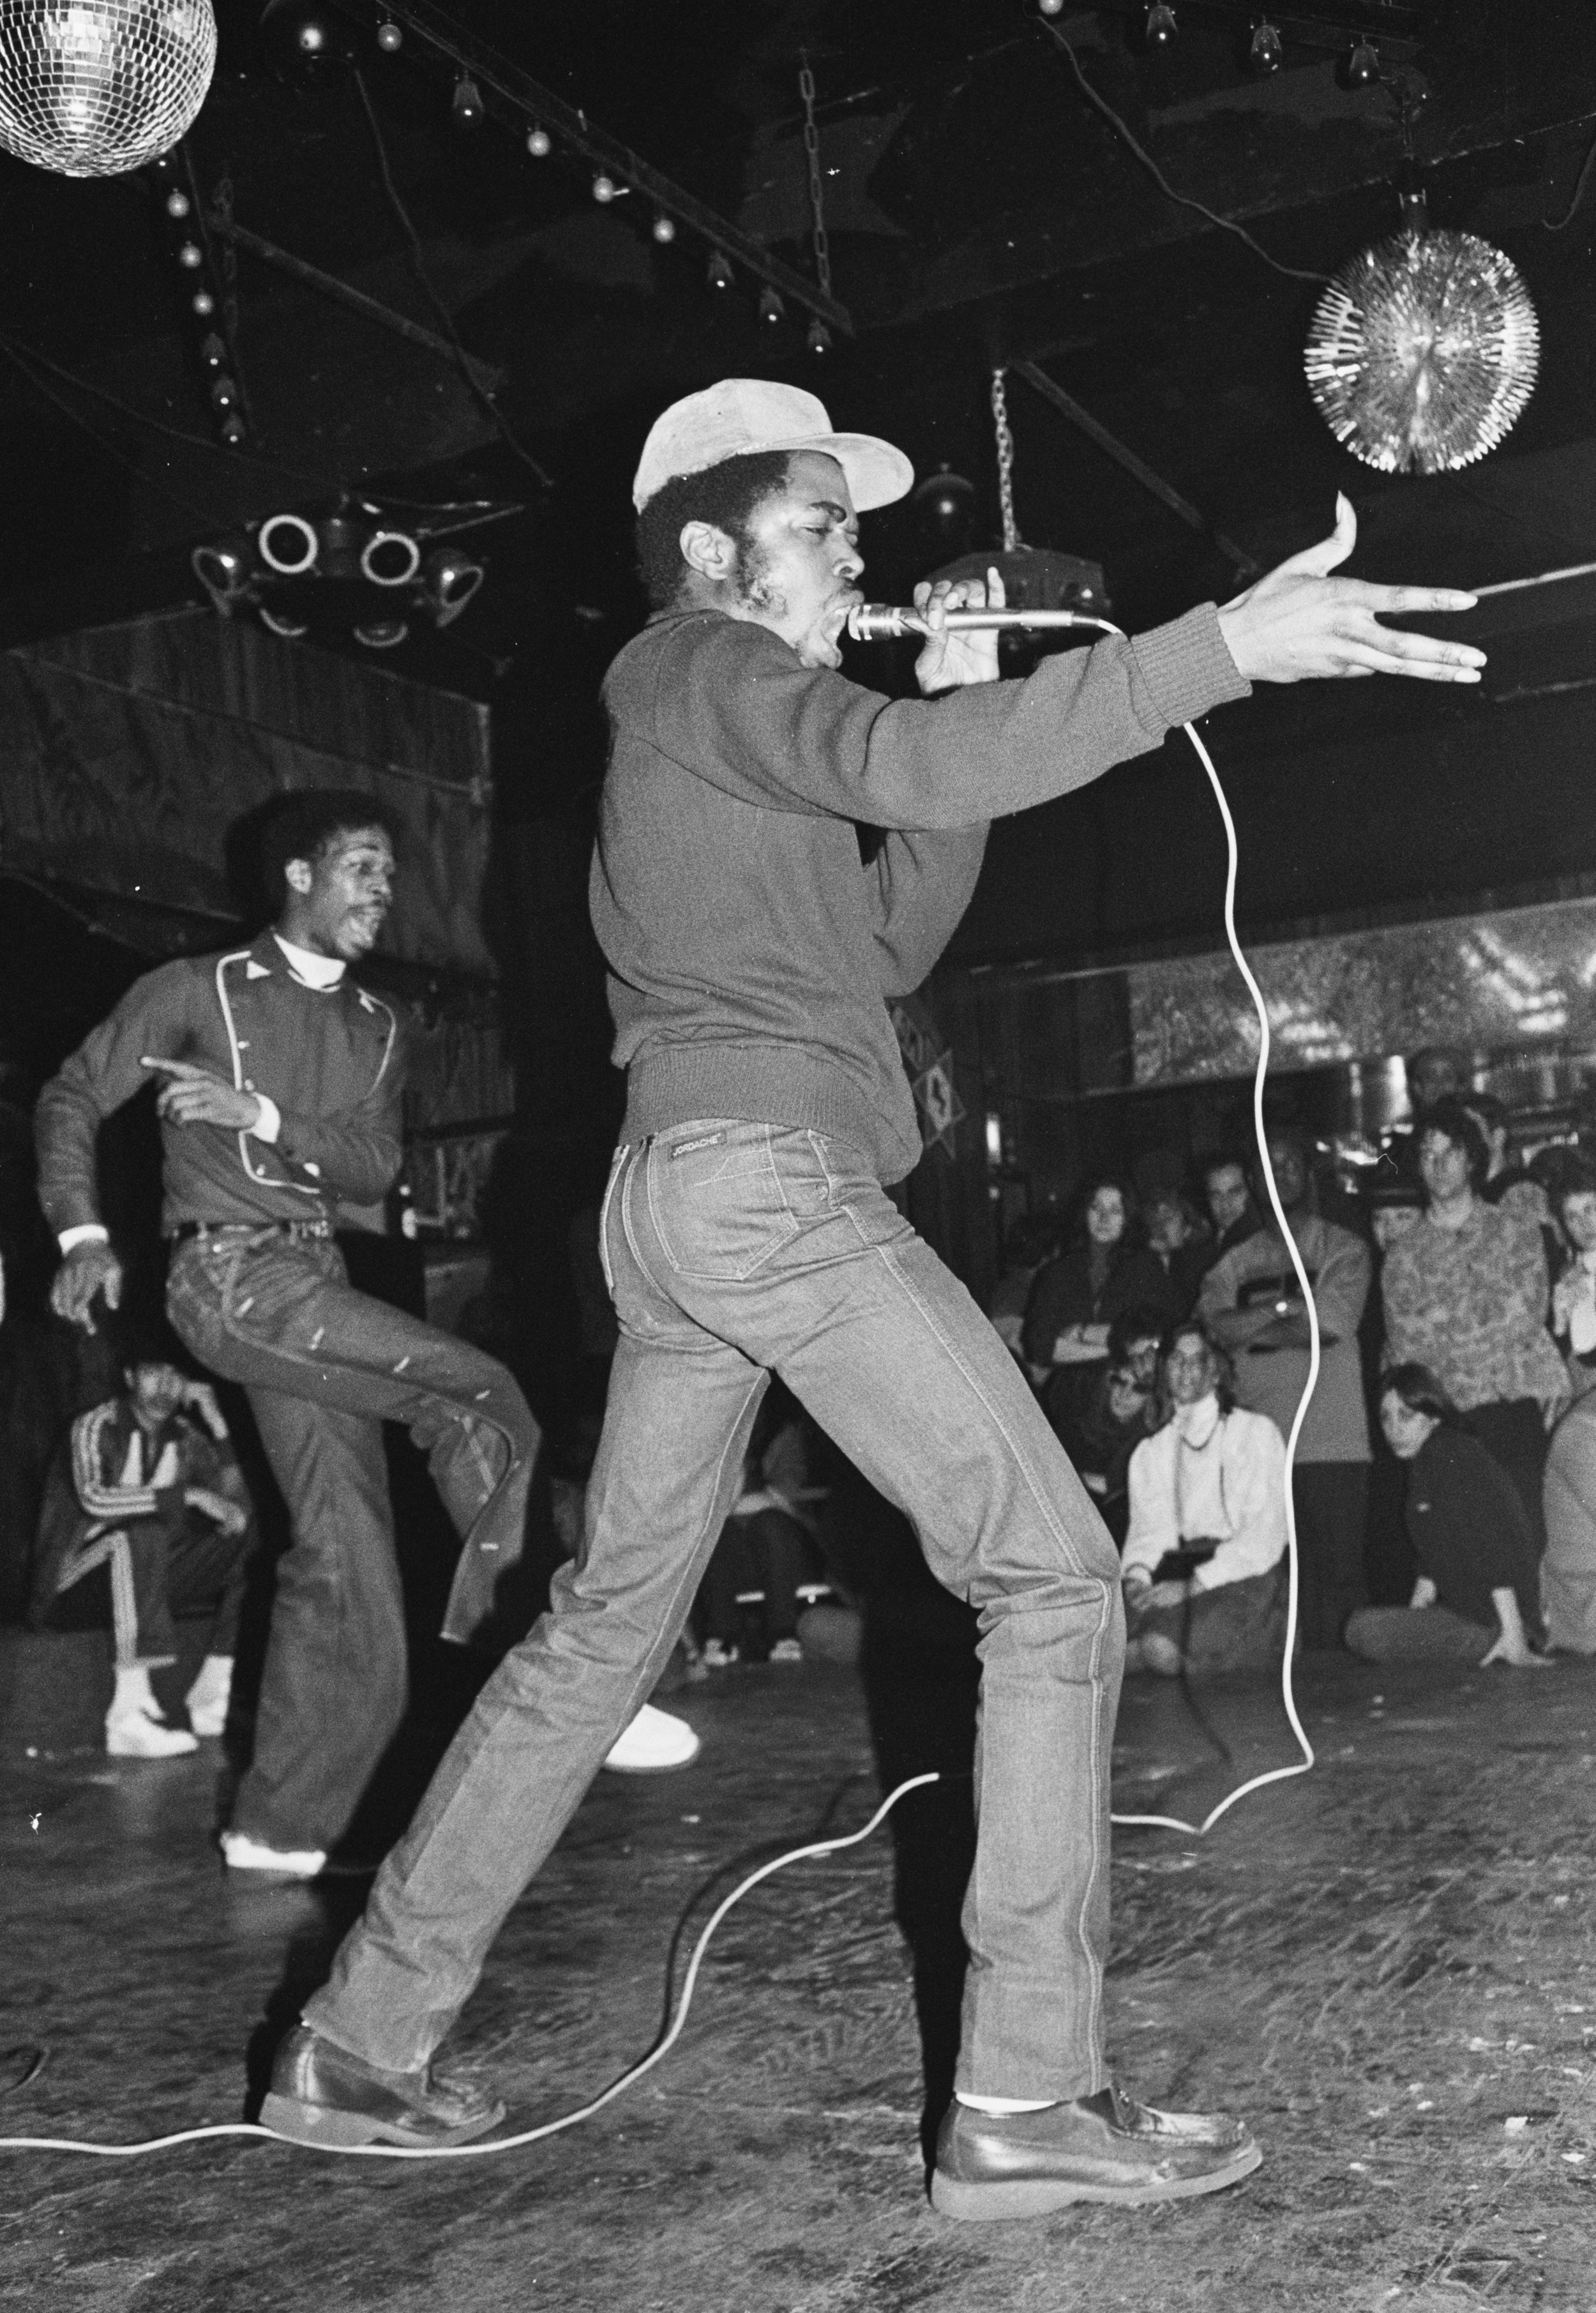 Joe Conzo ,  JDL (Jerry D. Lewis) of Cold Crush Brothers at Club Negril,  1981. Photo print. Courtesy of the Joe Conzo Archives. From upcoming exhibition   RESPECT: Hip-Hop Style & Wisdom .